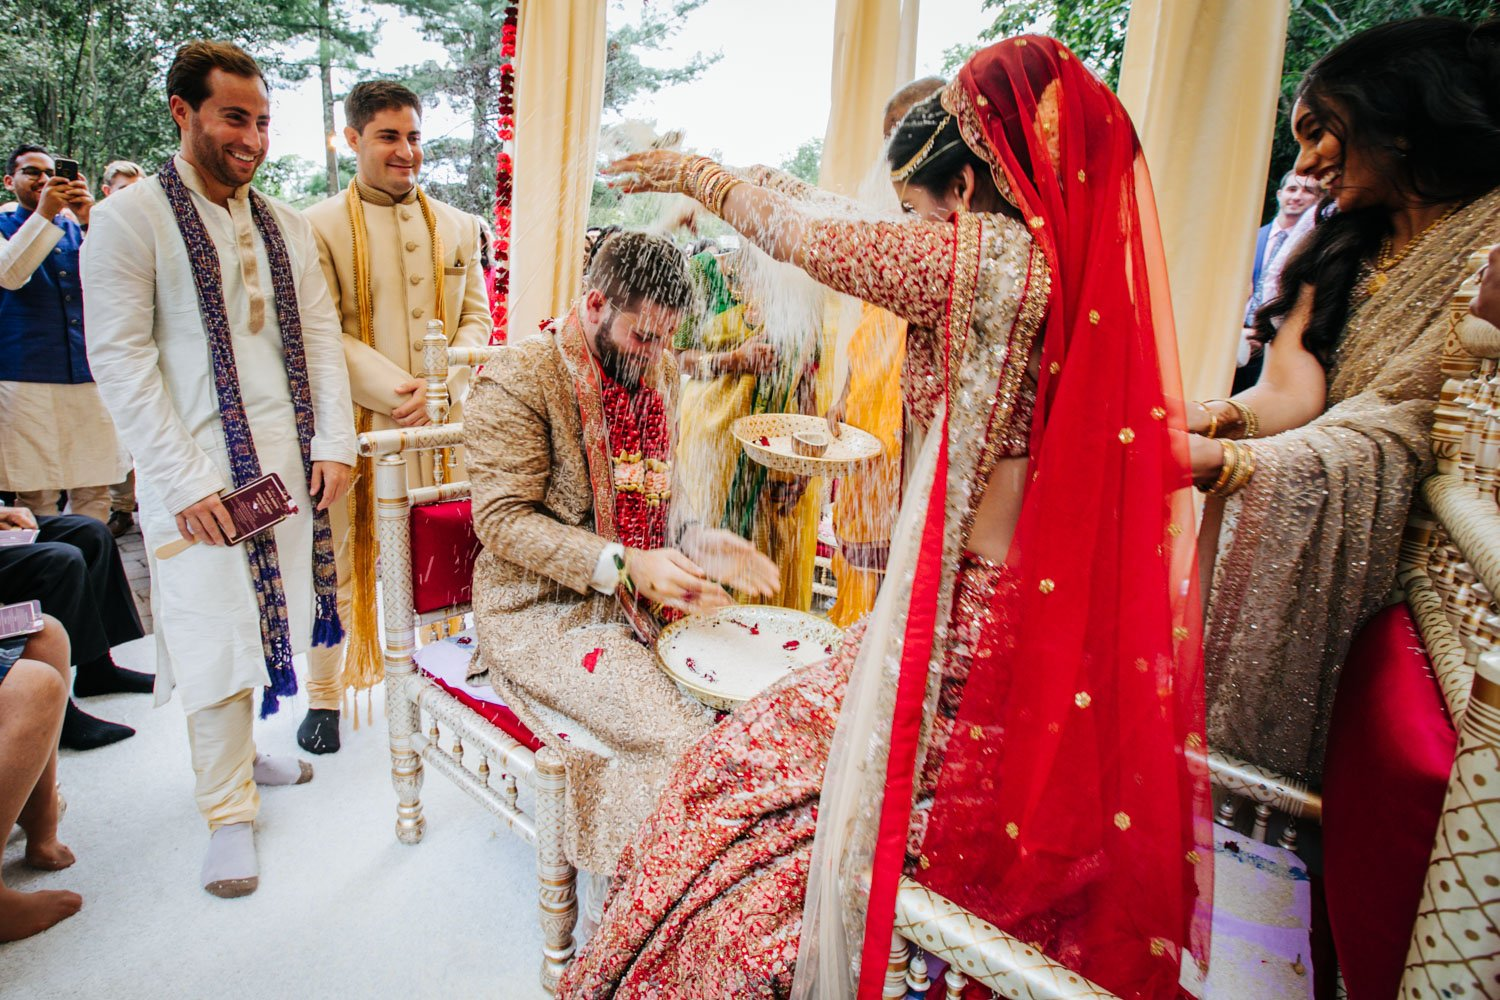 Throwing rice Indian wedding The Tides